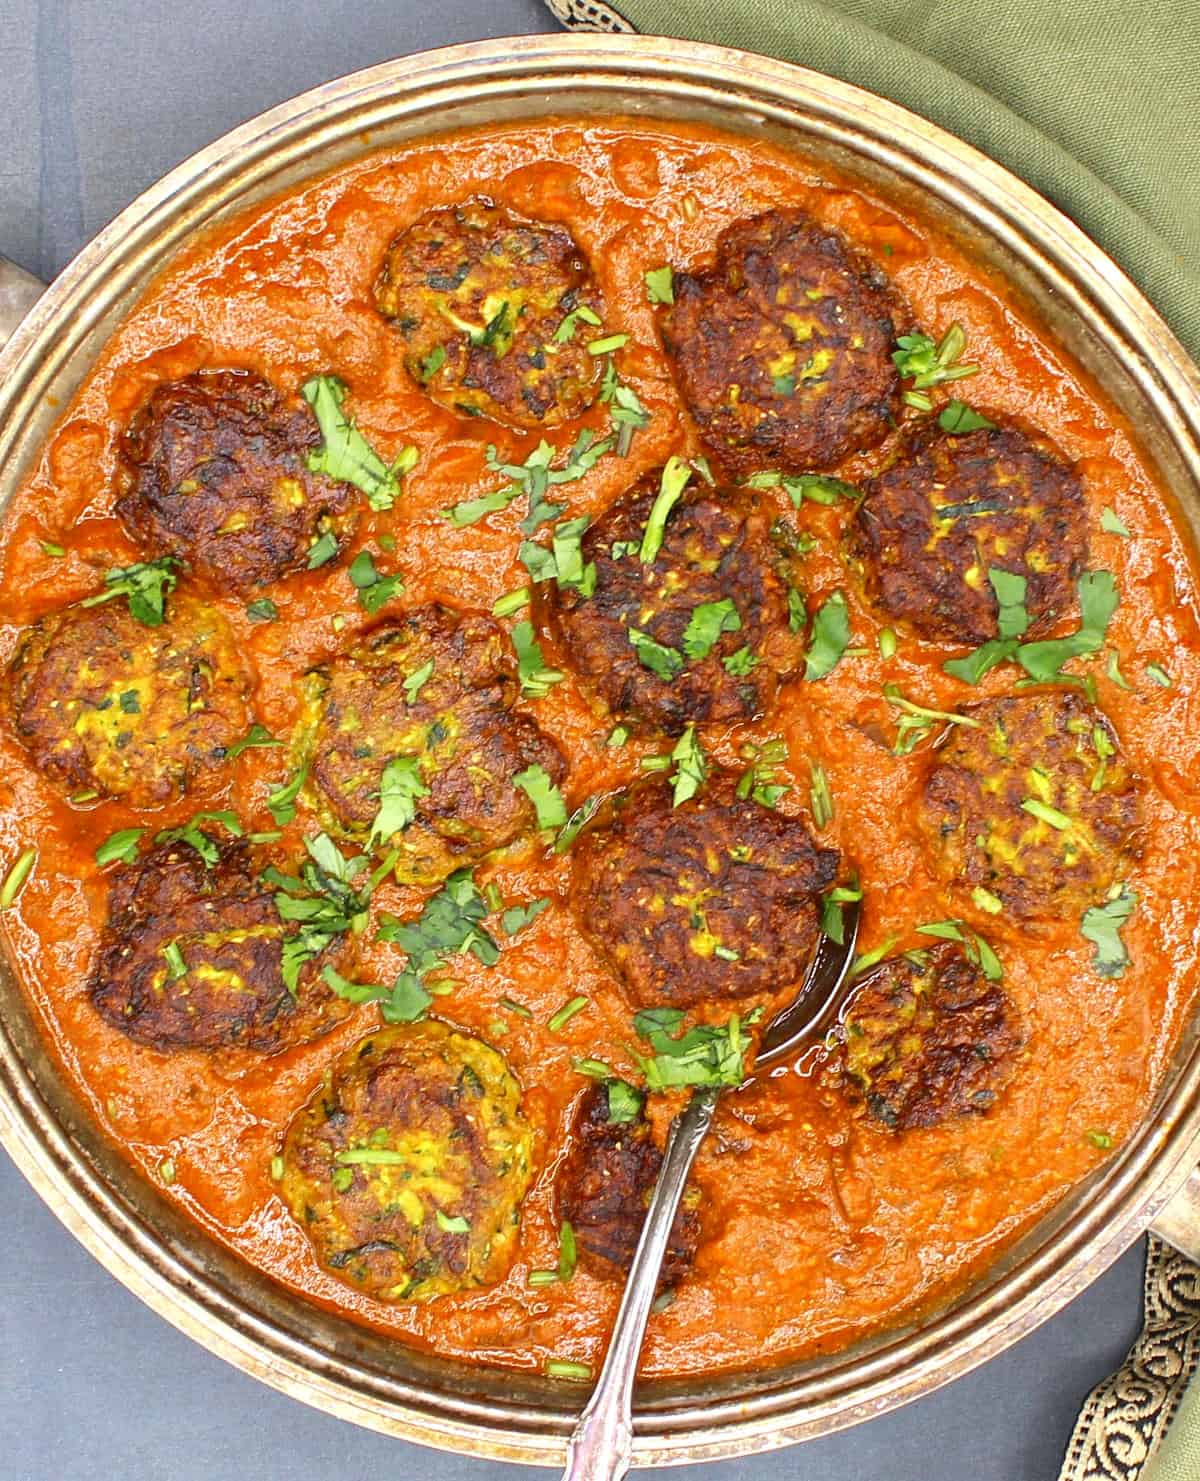 Overhead closeup of zucchini kofta curry with cilantro garnish and a spoon in a silver serving dish with a green napkin.